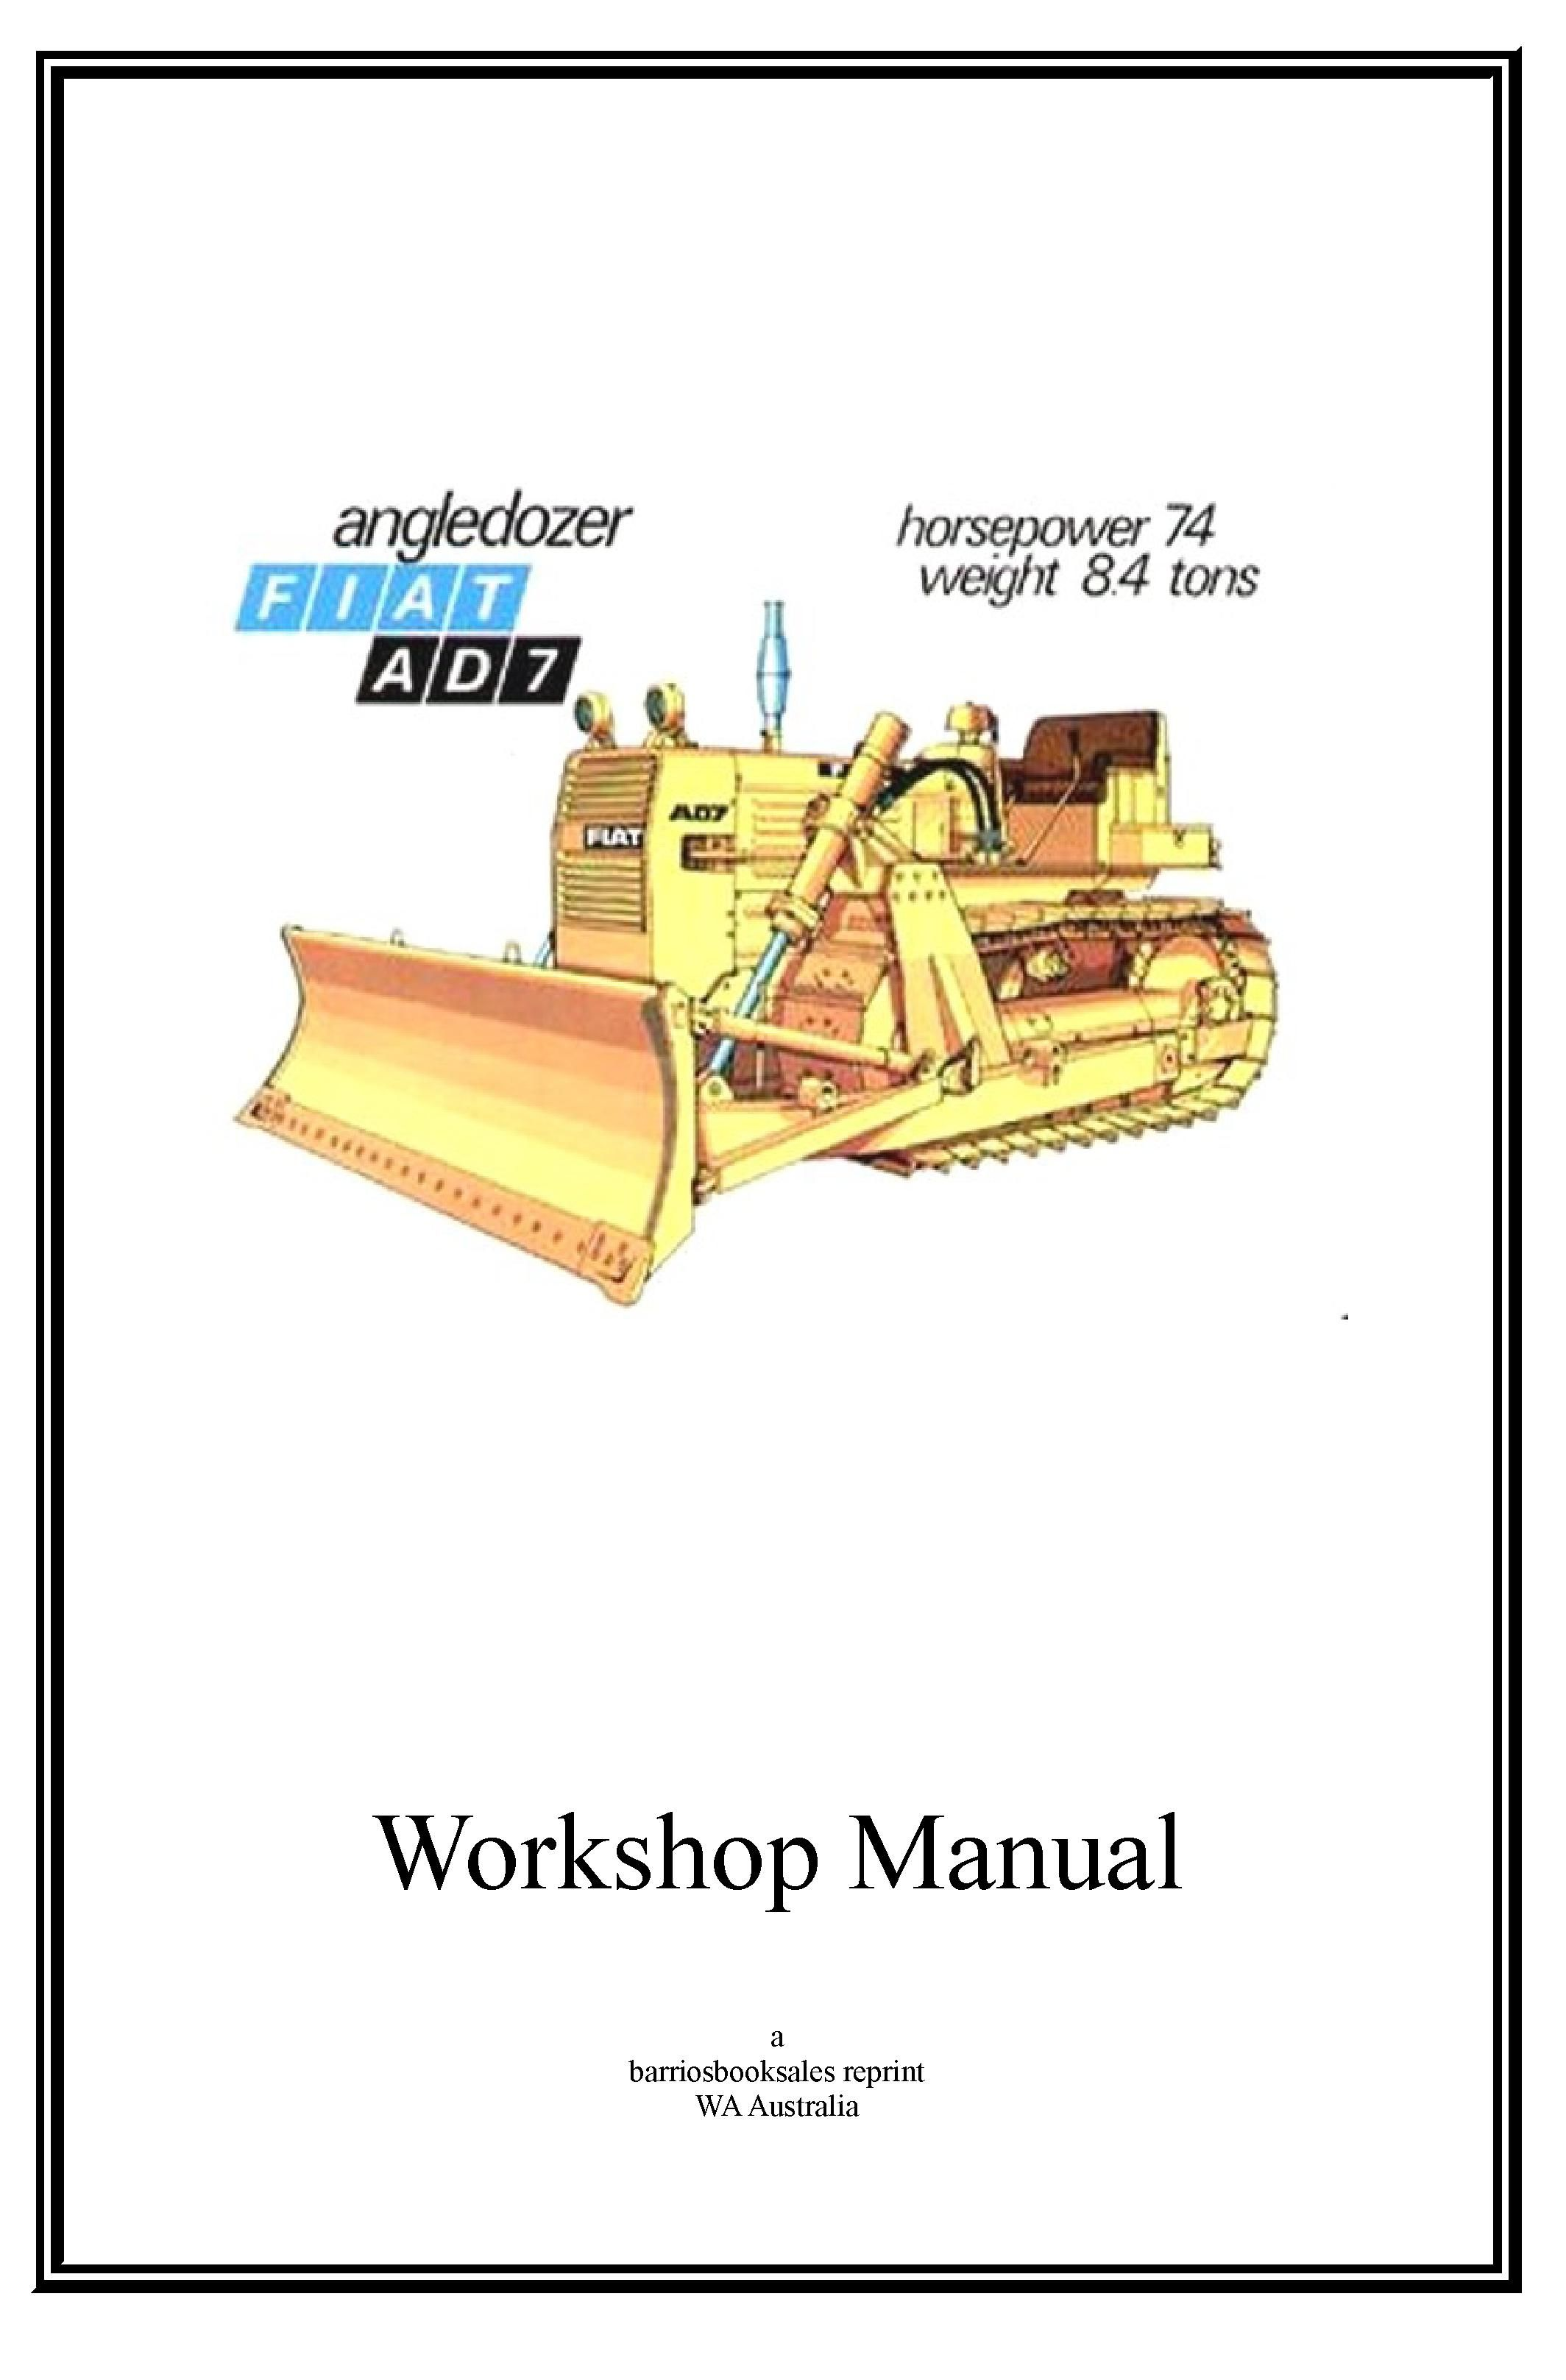 Pin by Tractor manuals downunder on Fiat tractor manuals to download    Pinterest   Fiat, Tractors and Manual